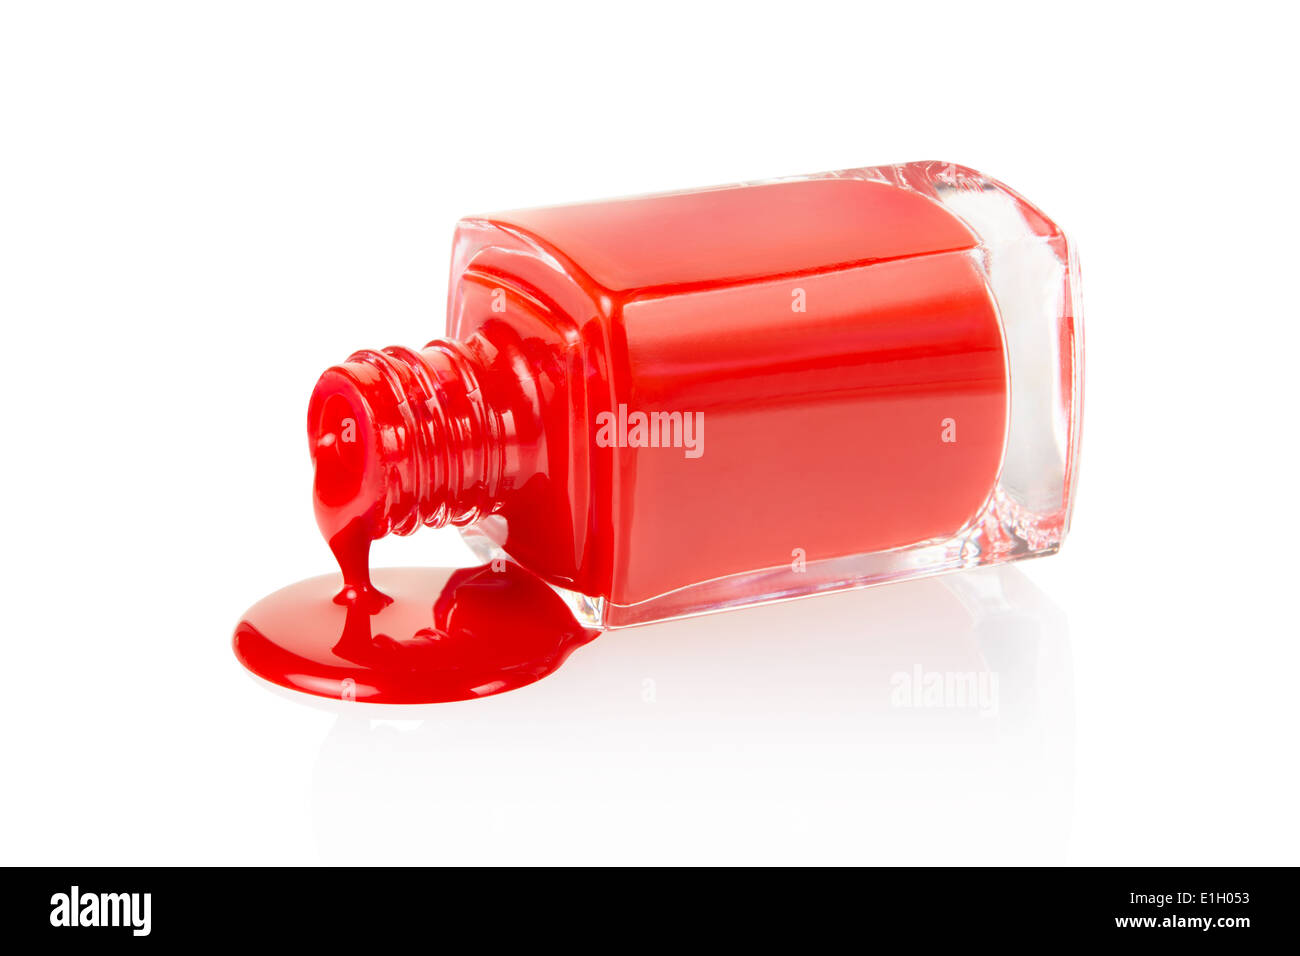 Red nail polish spilled - Stock Image